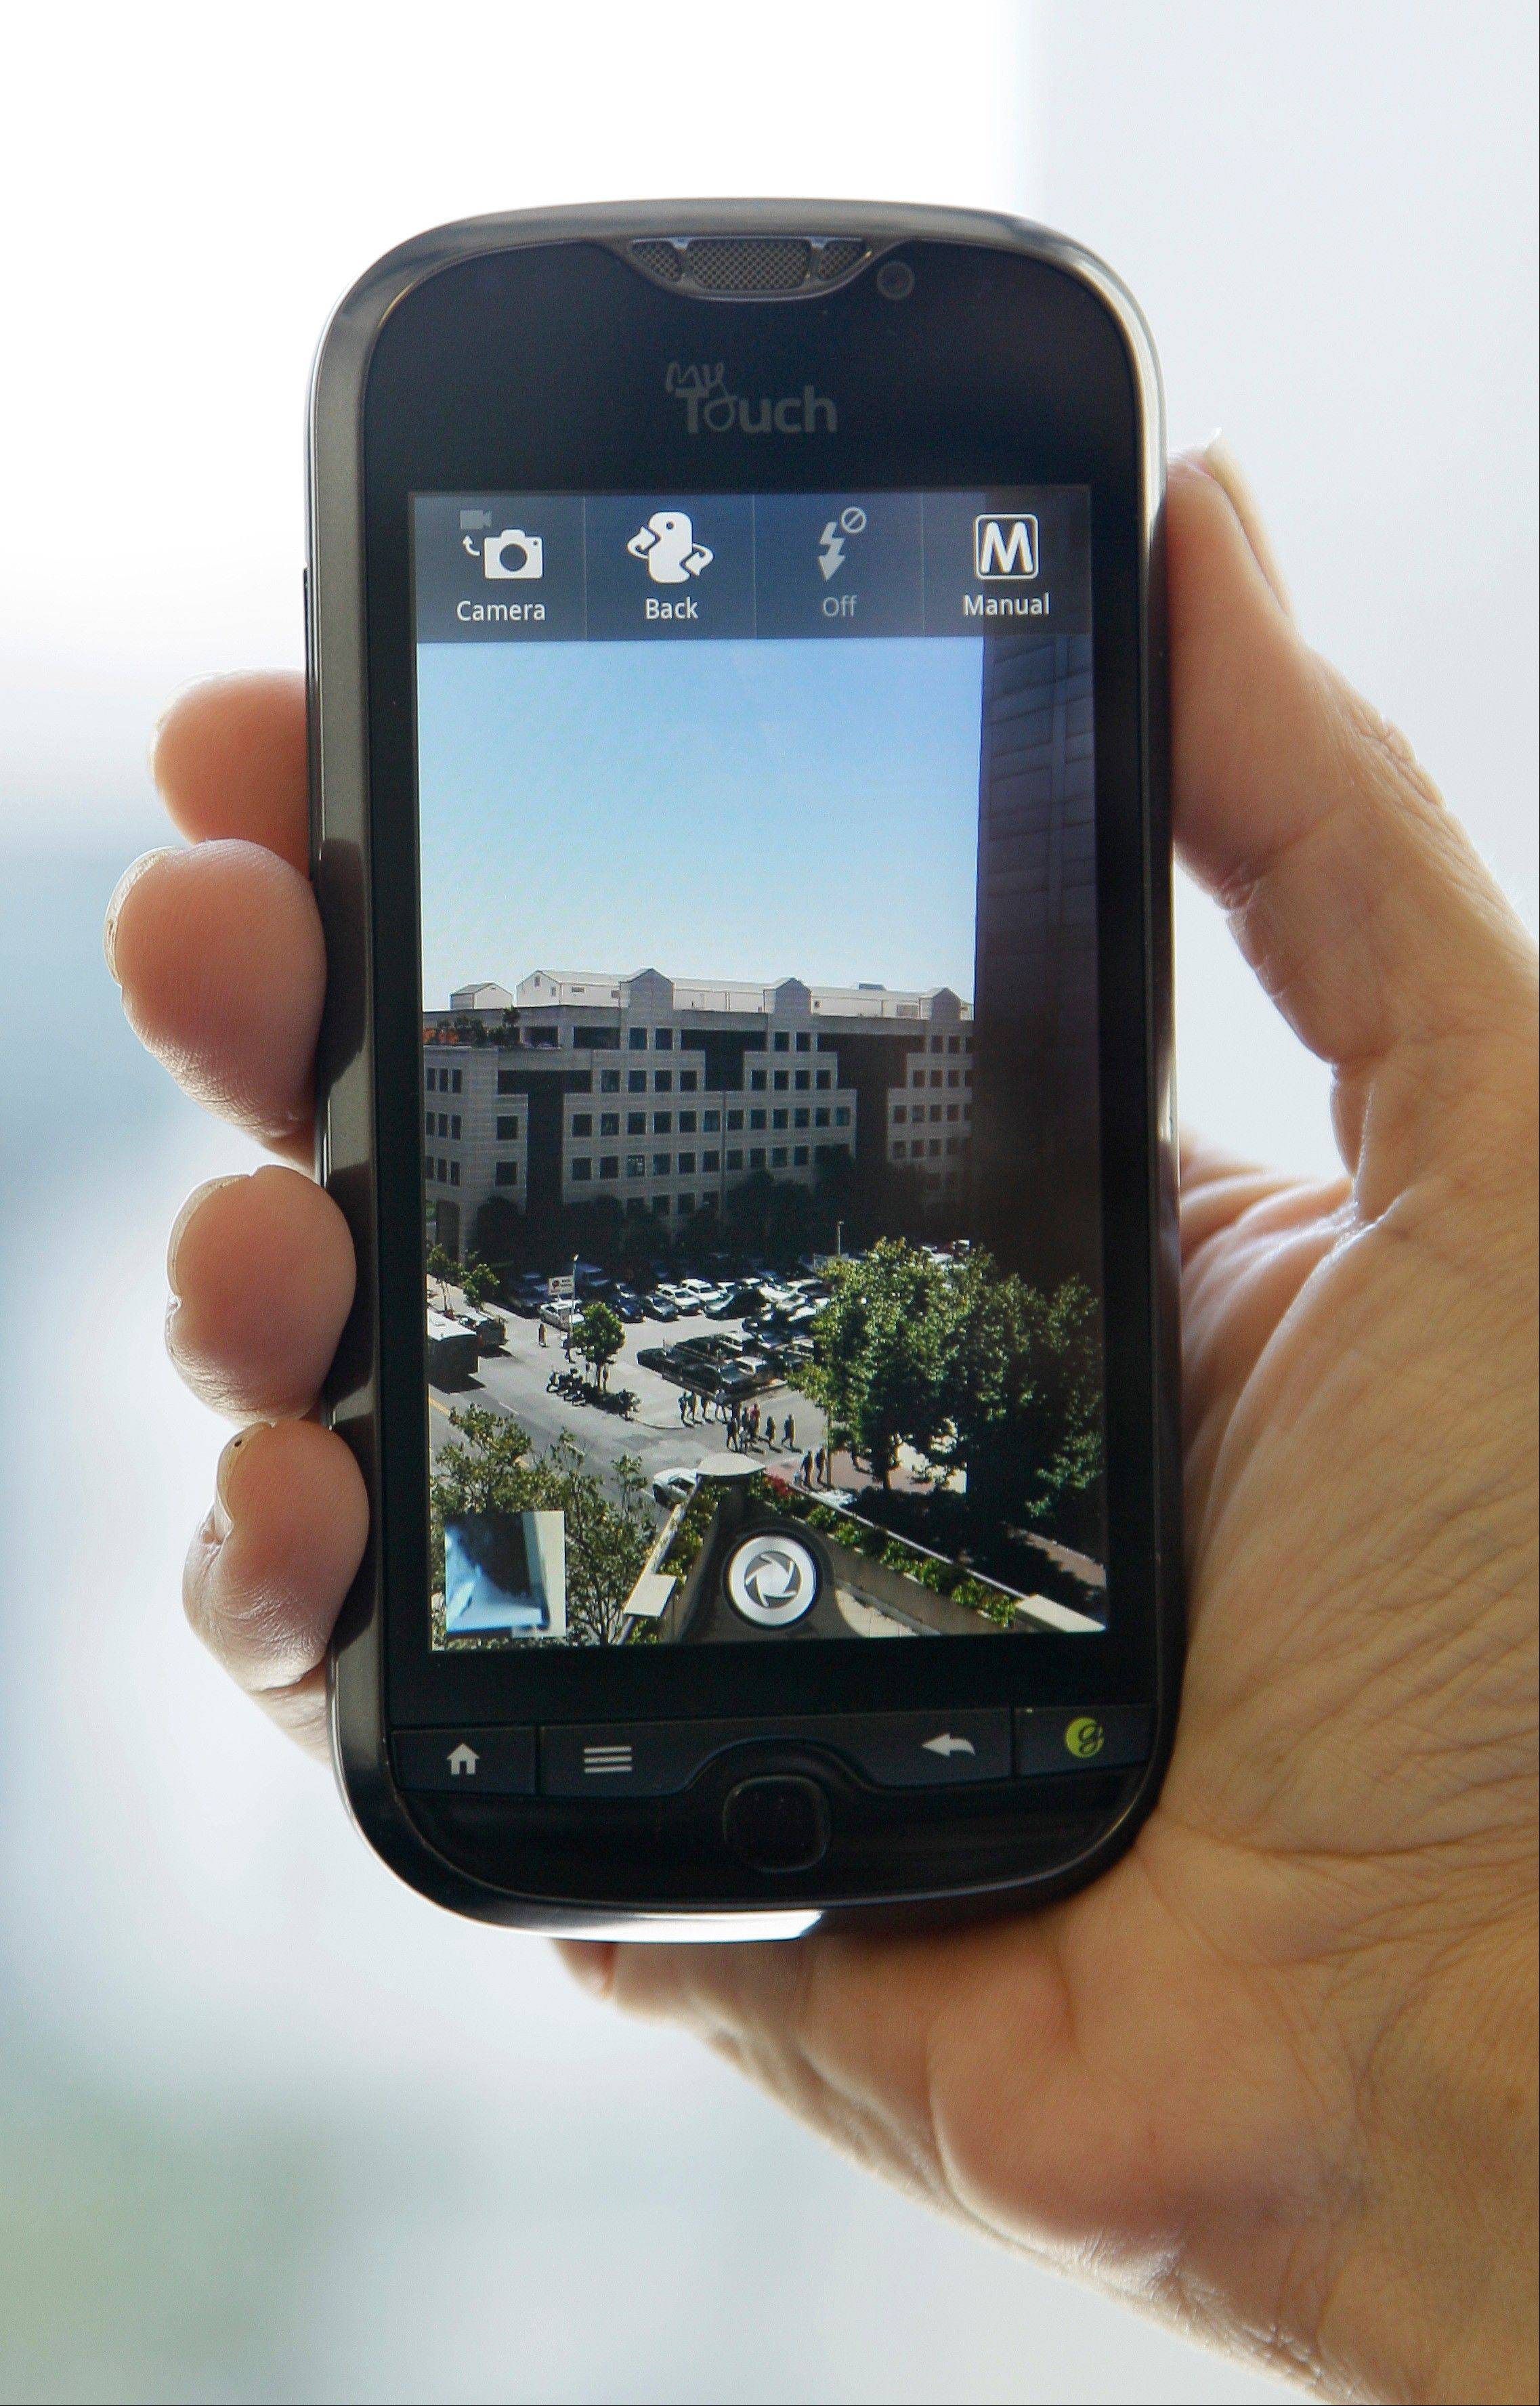 The HTC myTouch 4G Slide smartphone takes crisp, bright photos and is simple to use, reviewer Rachel Metz says.